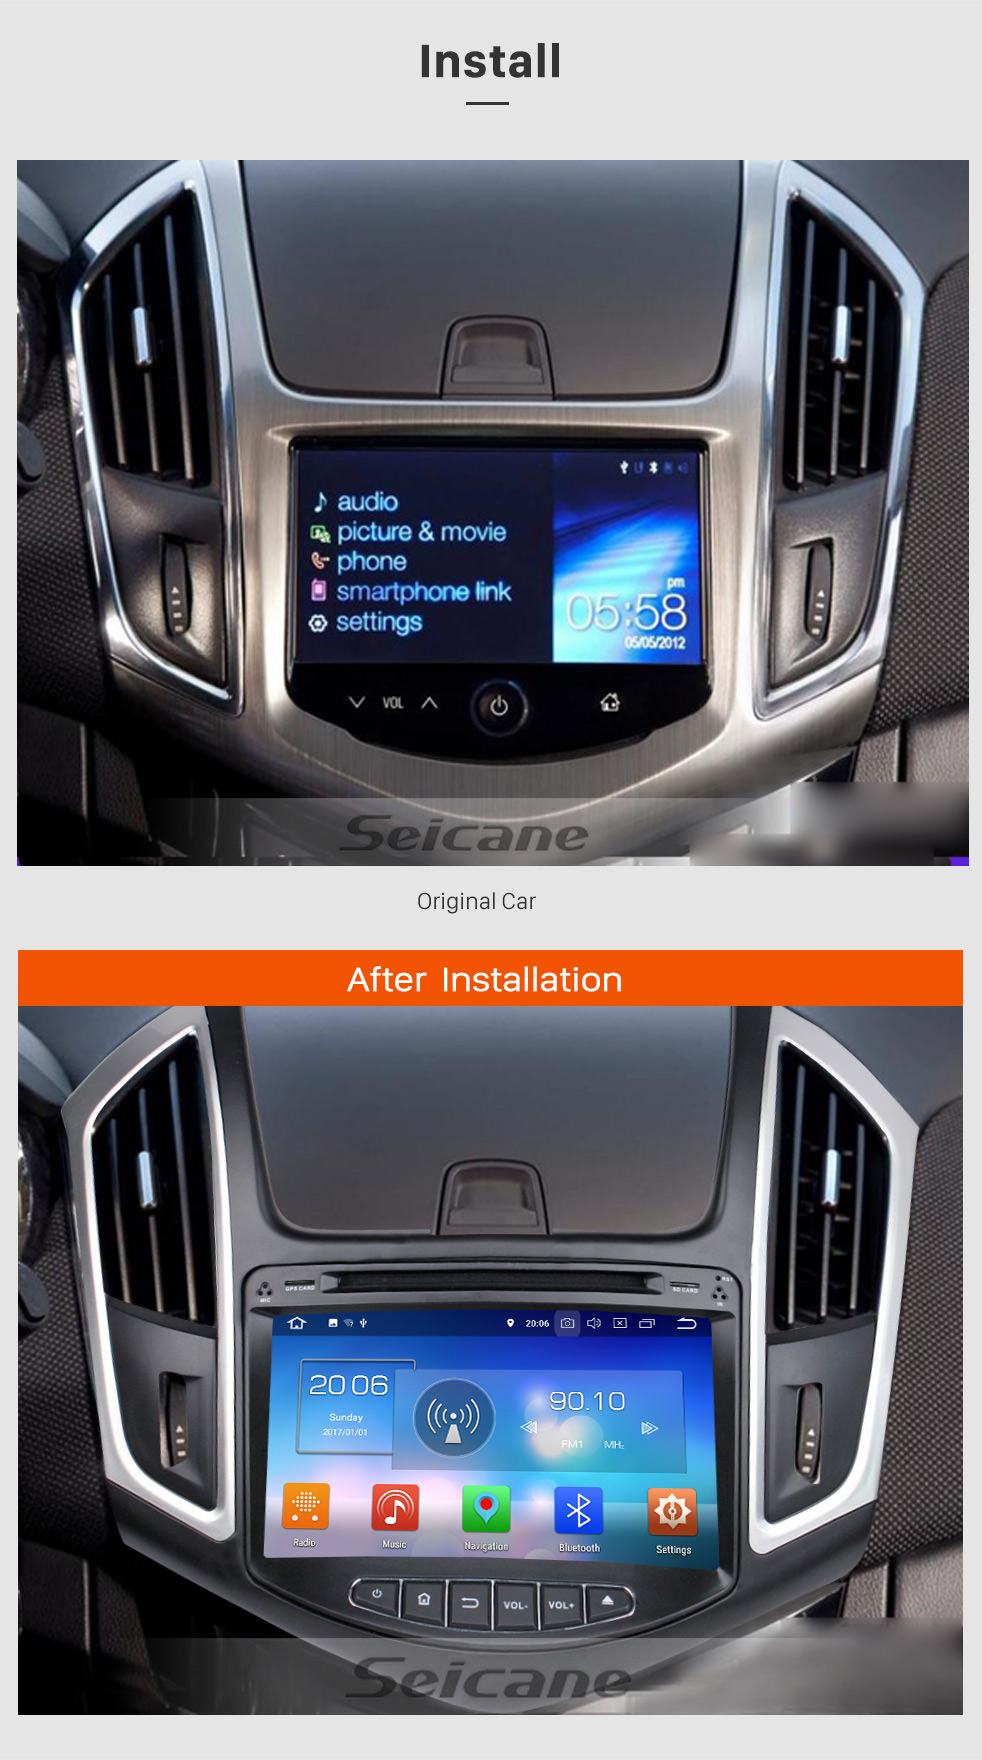 Seicane Android 8.0 Radio GPS navigation system Car Stereo for 2015 Chevy Chevrolet CRUZE with Bluetooth DVD player Mirror link HD 1024*600 touch screen OBD2 DVR Rearview camera TV 1080P Video 3G WIFI Steering Wheel Control  USB